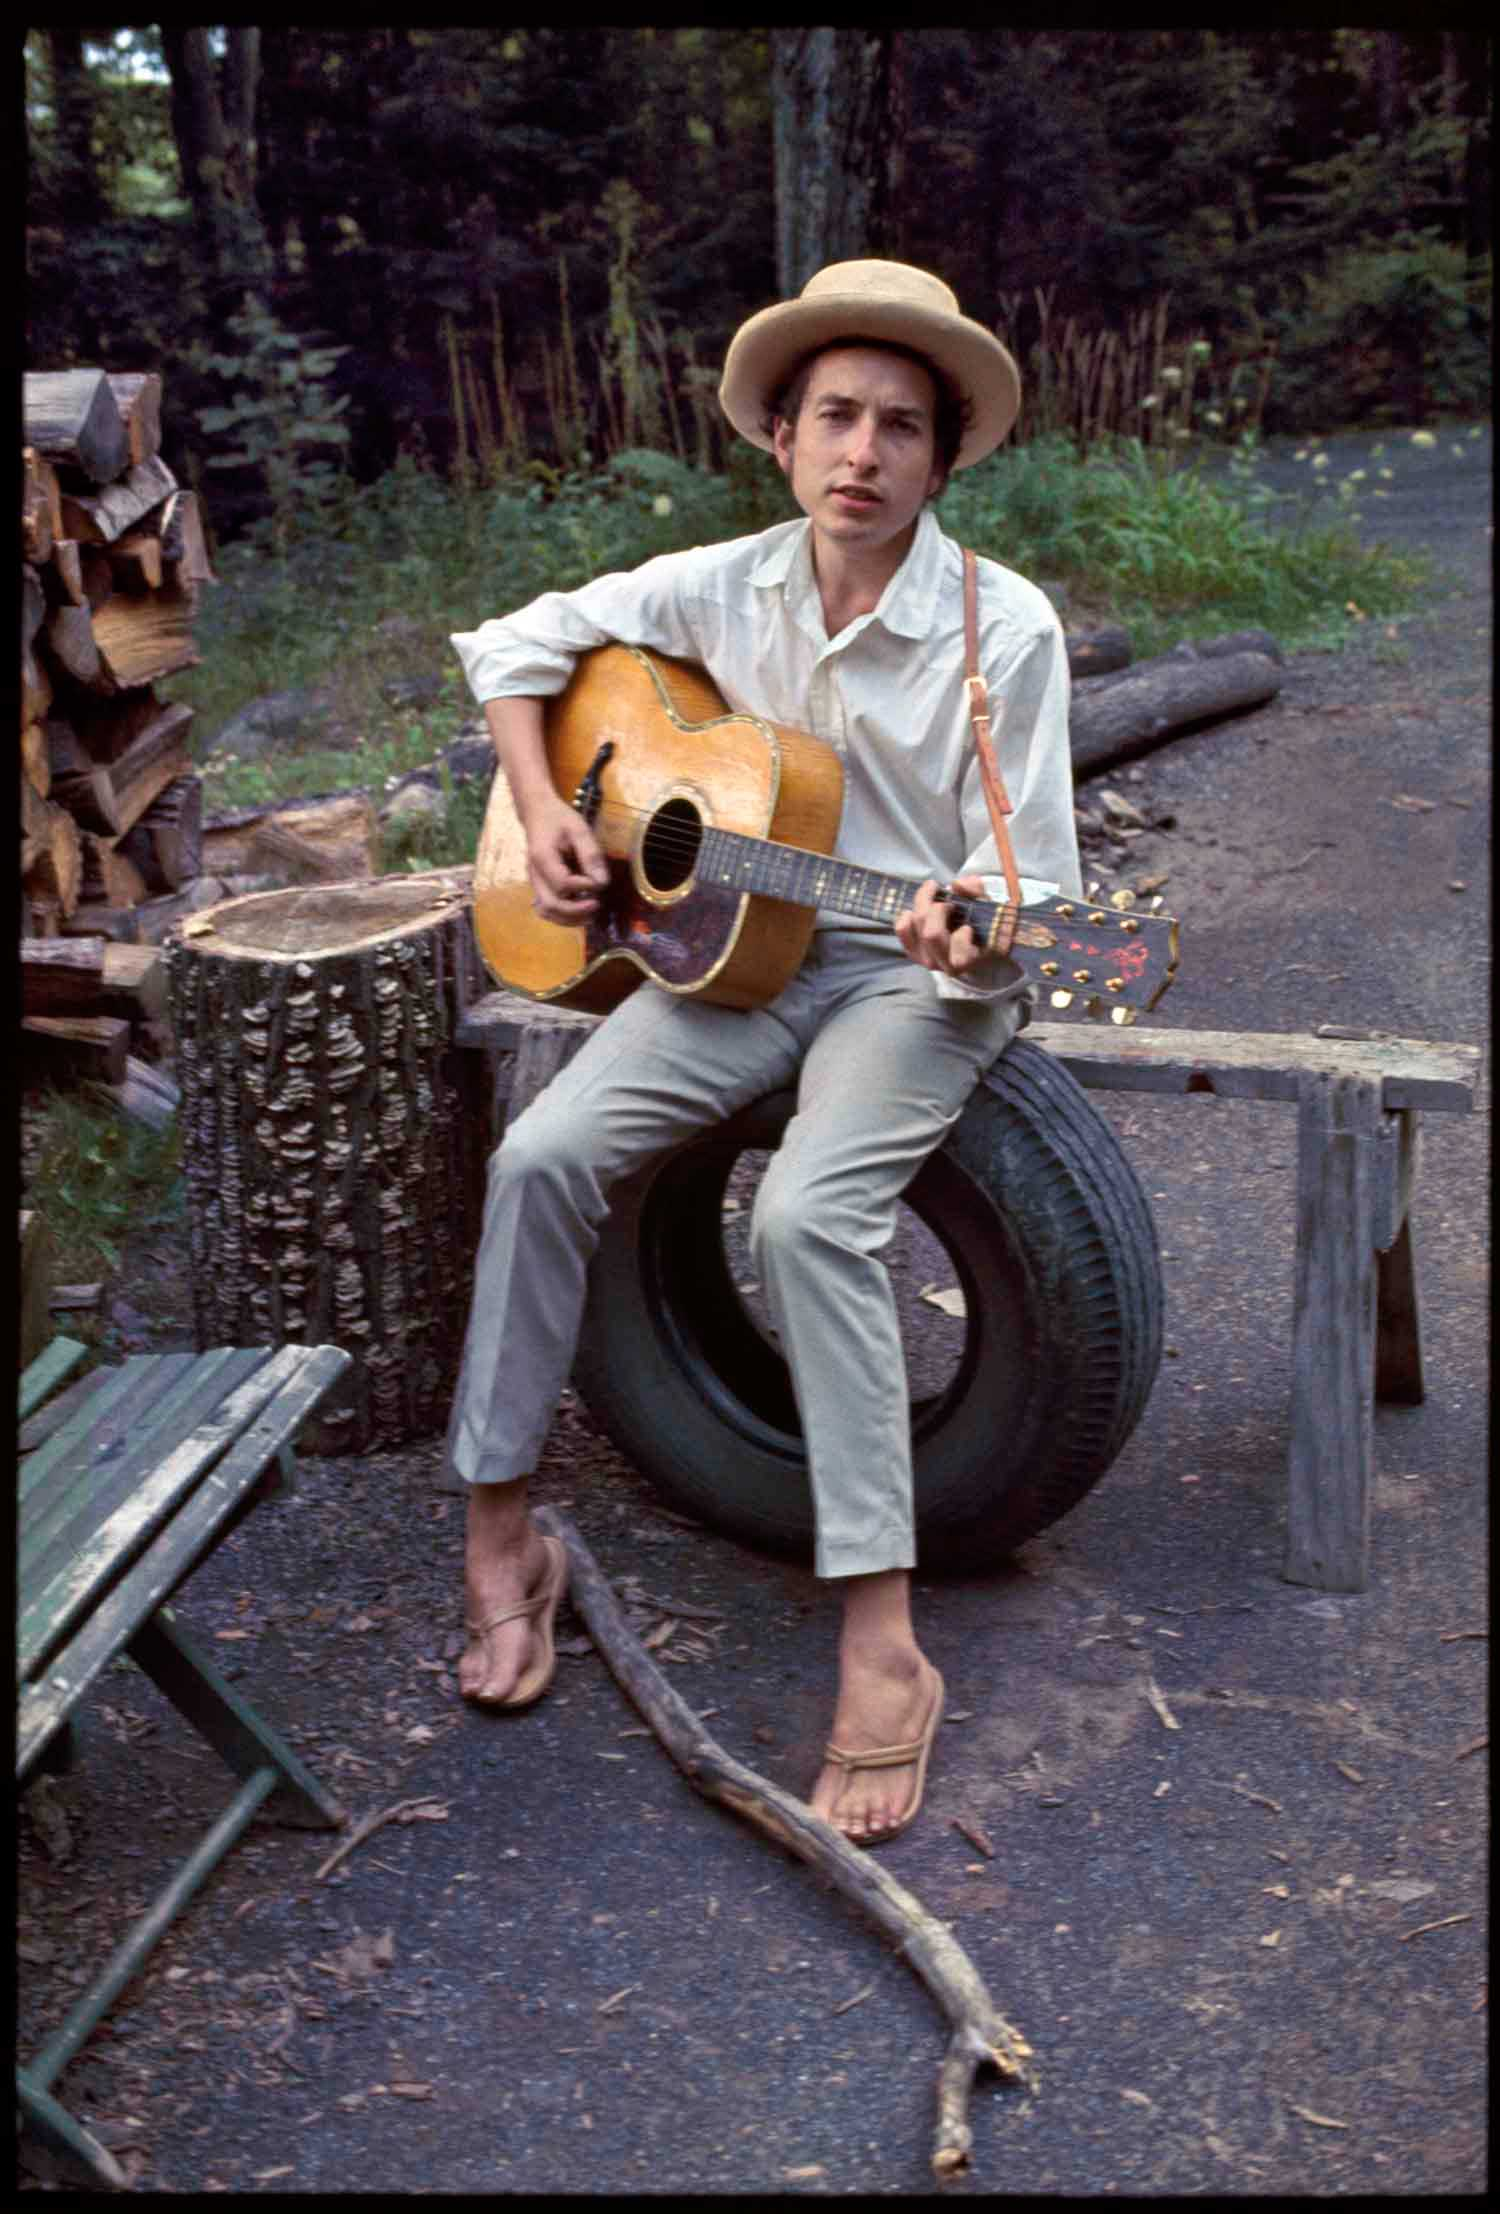 Dylan at Woodstock Image: Elliot Landy